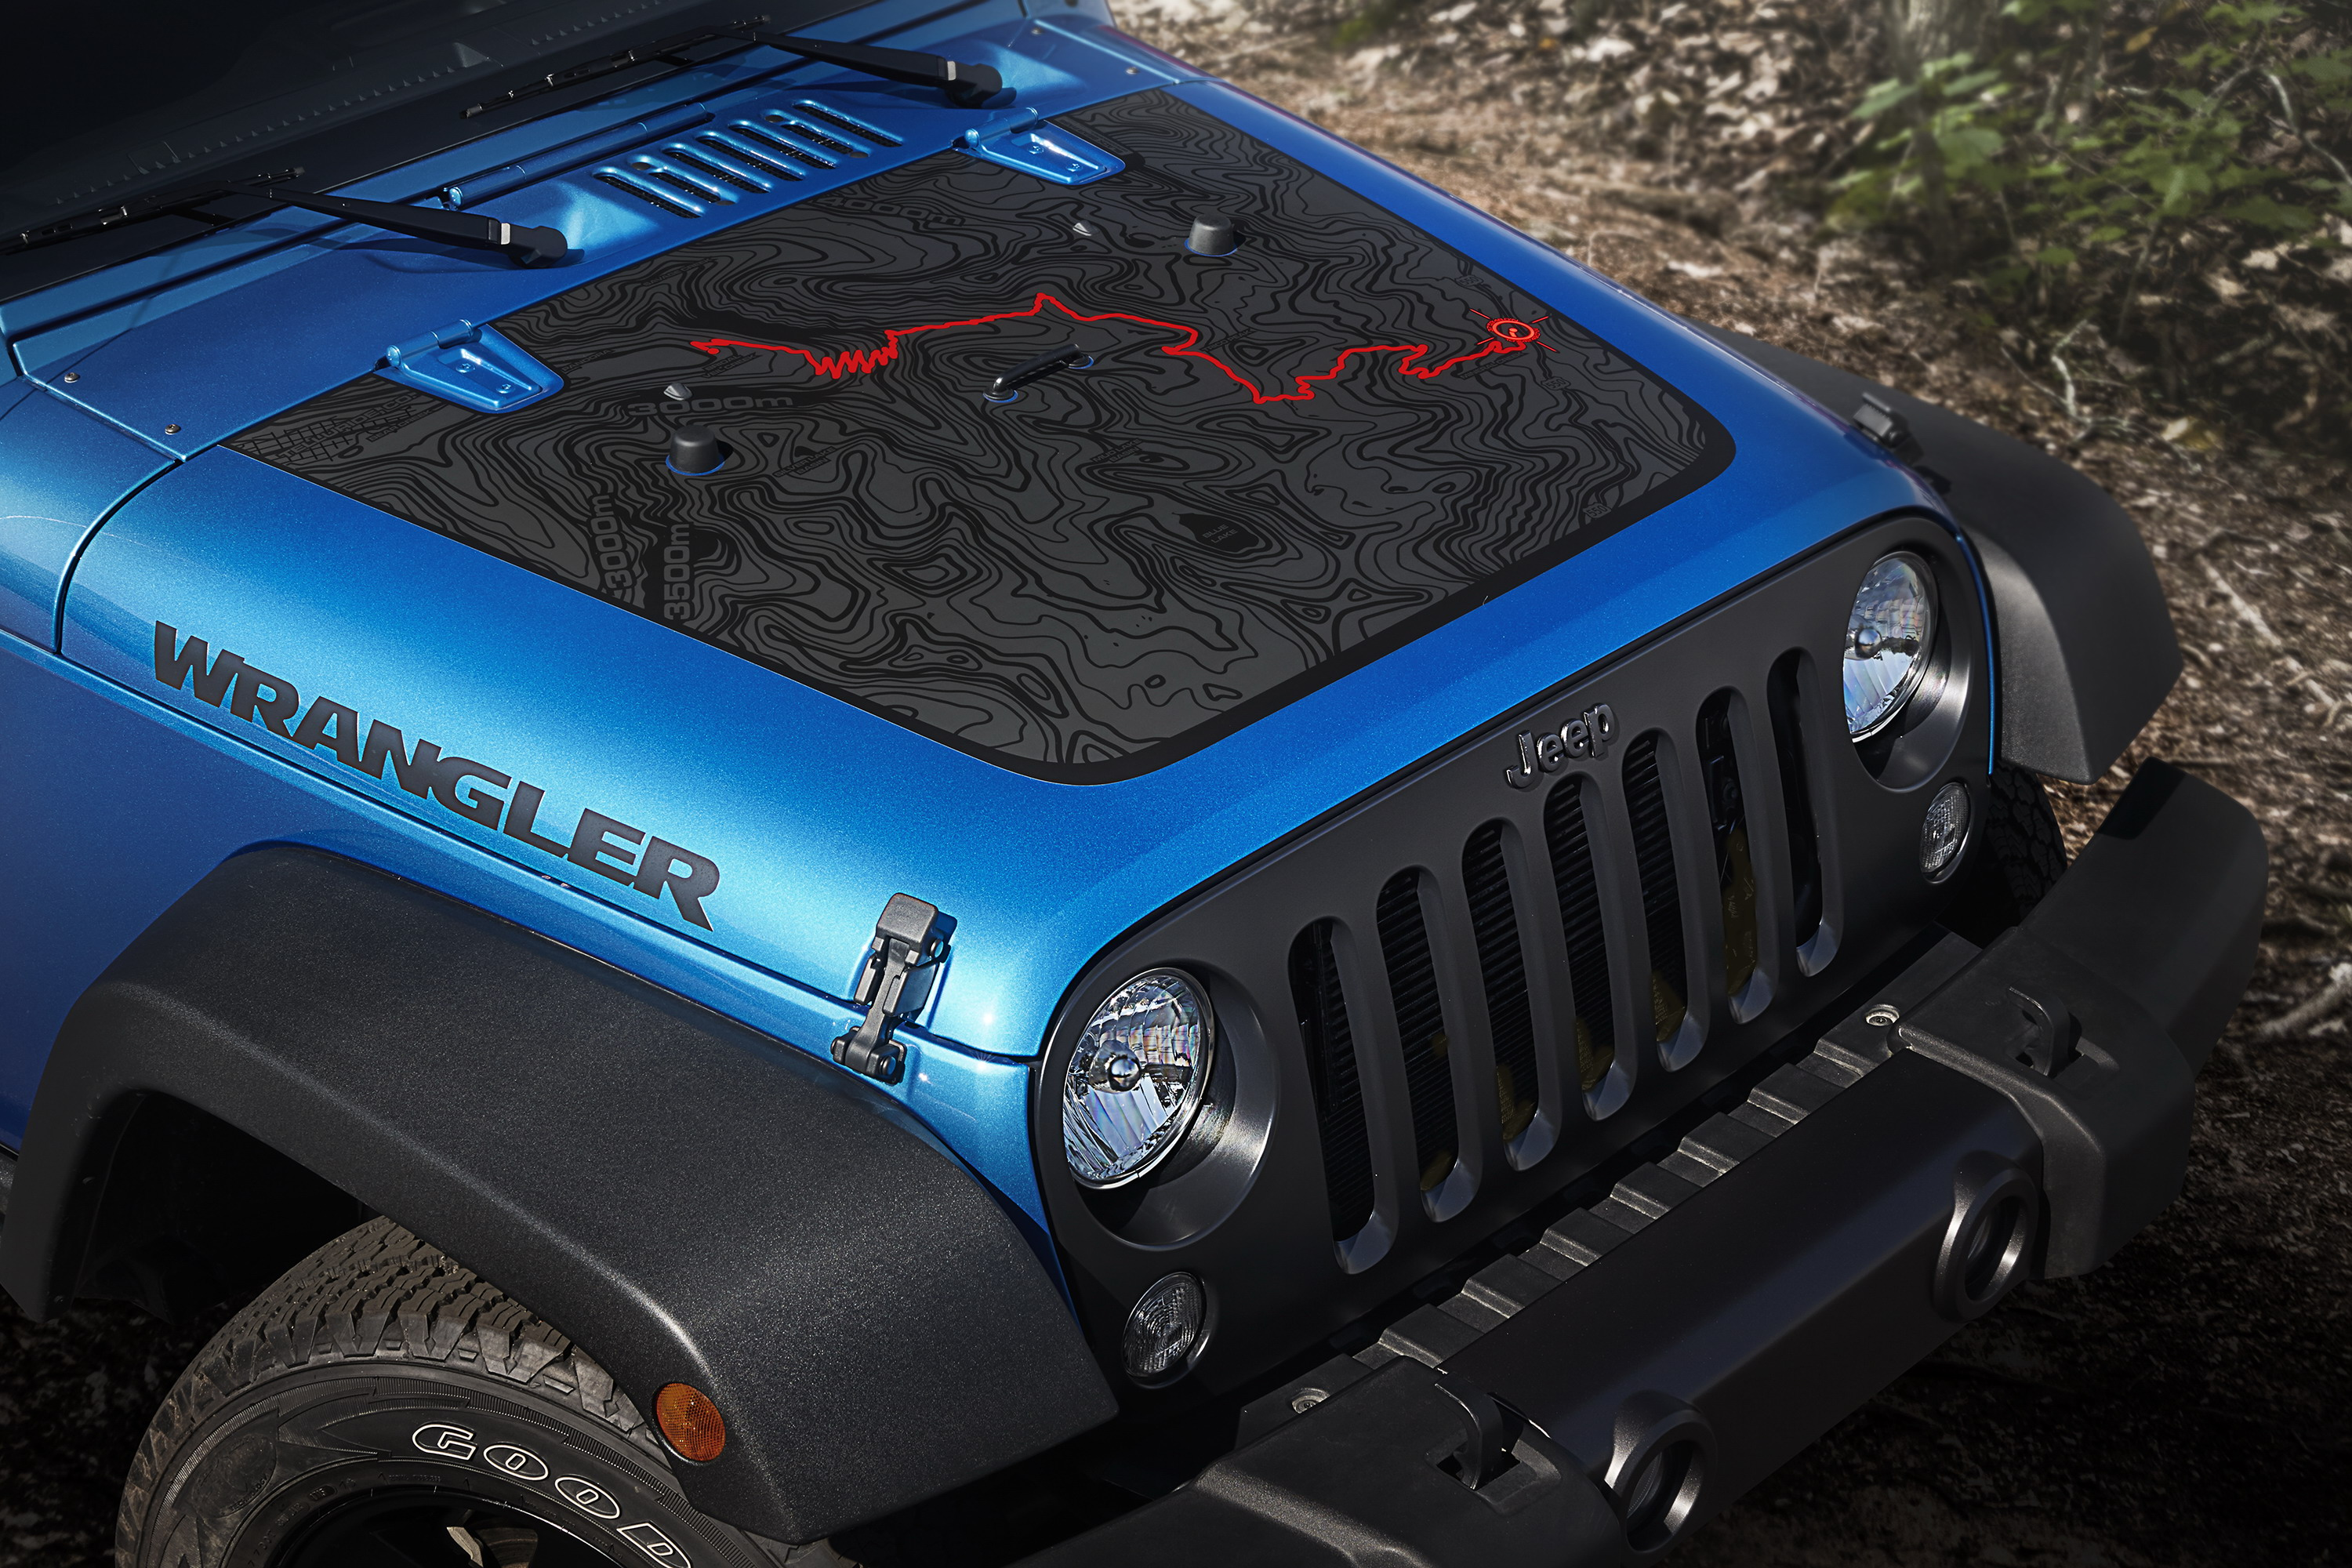 stock floor htm for rubicon sale suv wrangler tacoma used unlimited wa jeep mats